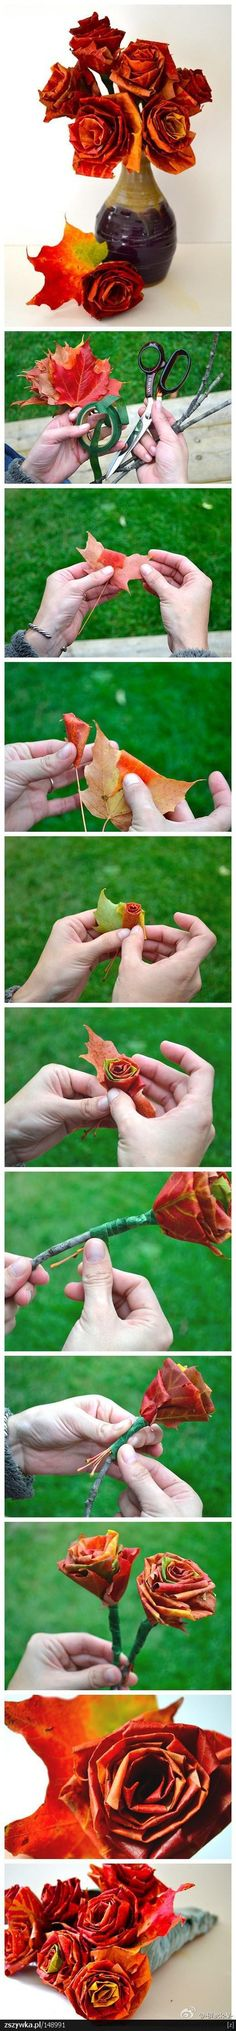 leaf roases-DIY